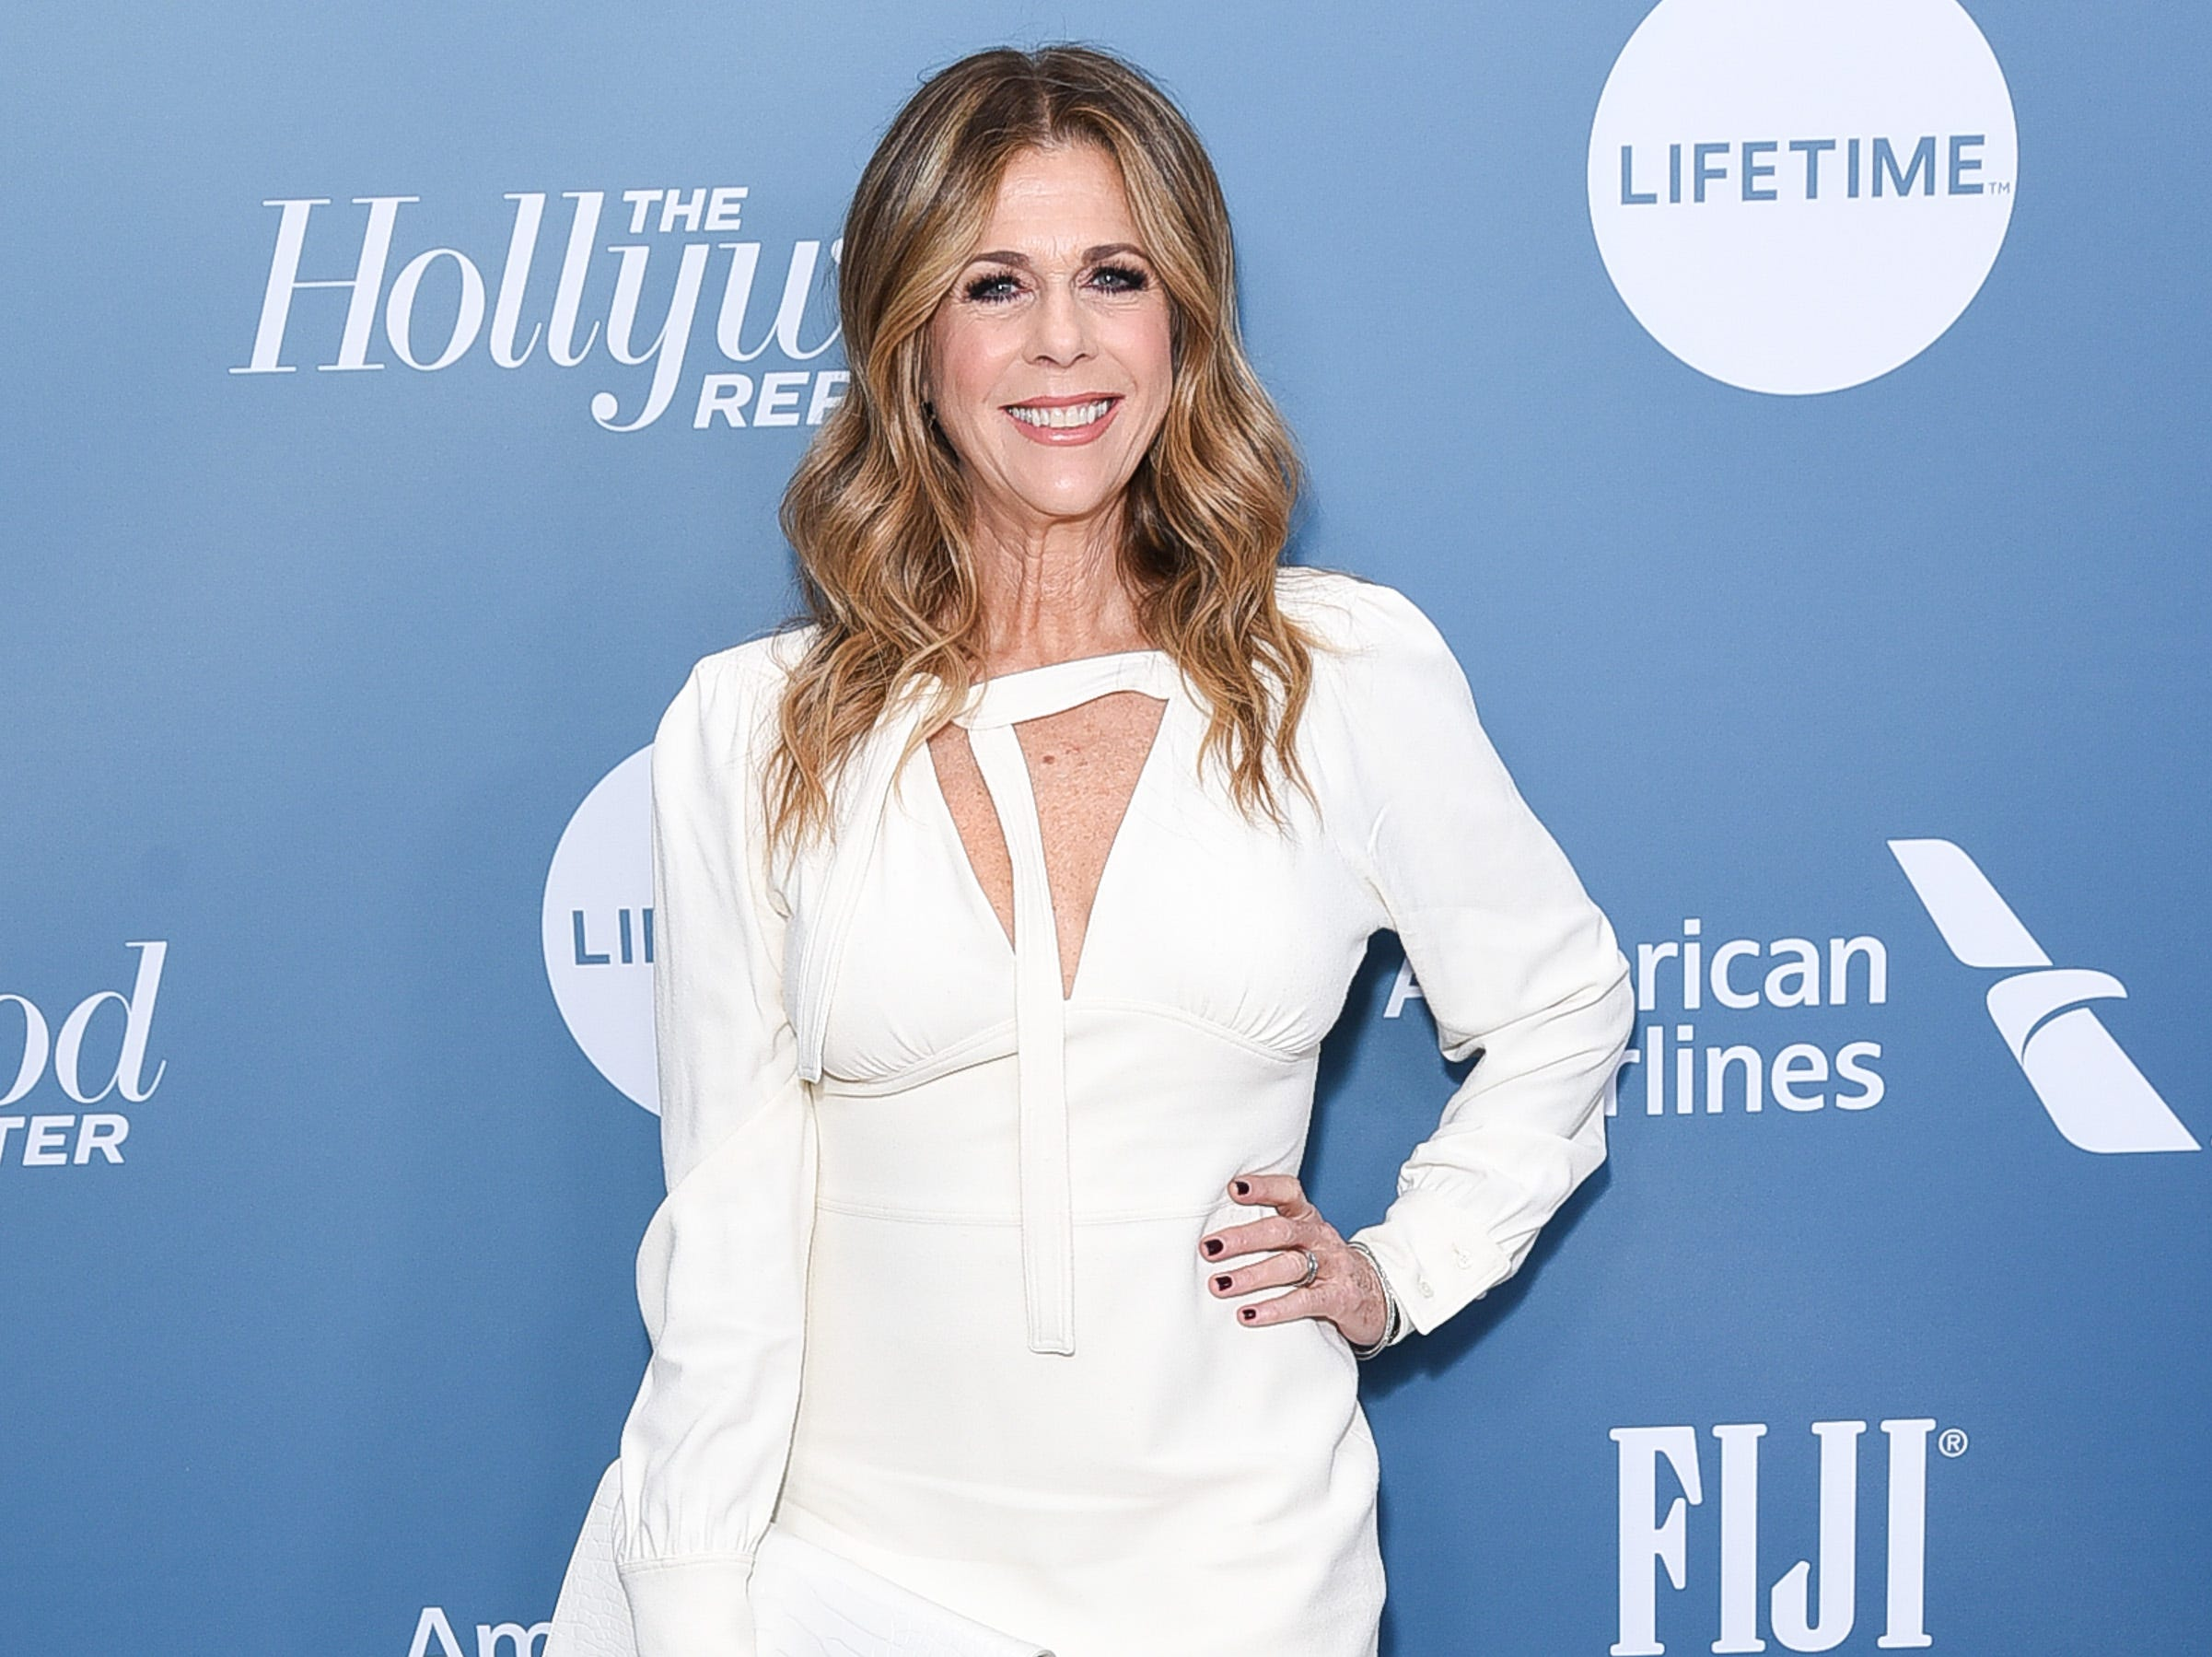 LOS ANGELES, CALIFORNIA - DECEMBER 05: Rita Wilson attends The Hollywood Reporter's Power 100 Women In Entertainment at Milk Studios on December 05, 2018 in Los Angeles, California. (Photo by Presley Ann/Getty Images) ORG XMIT: 775264723 ORIG FILE ID: 1077829220